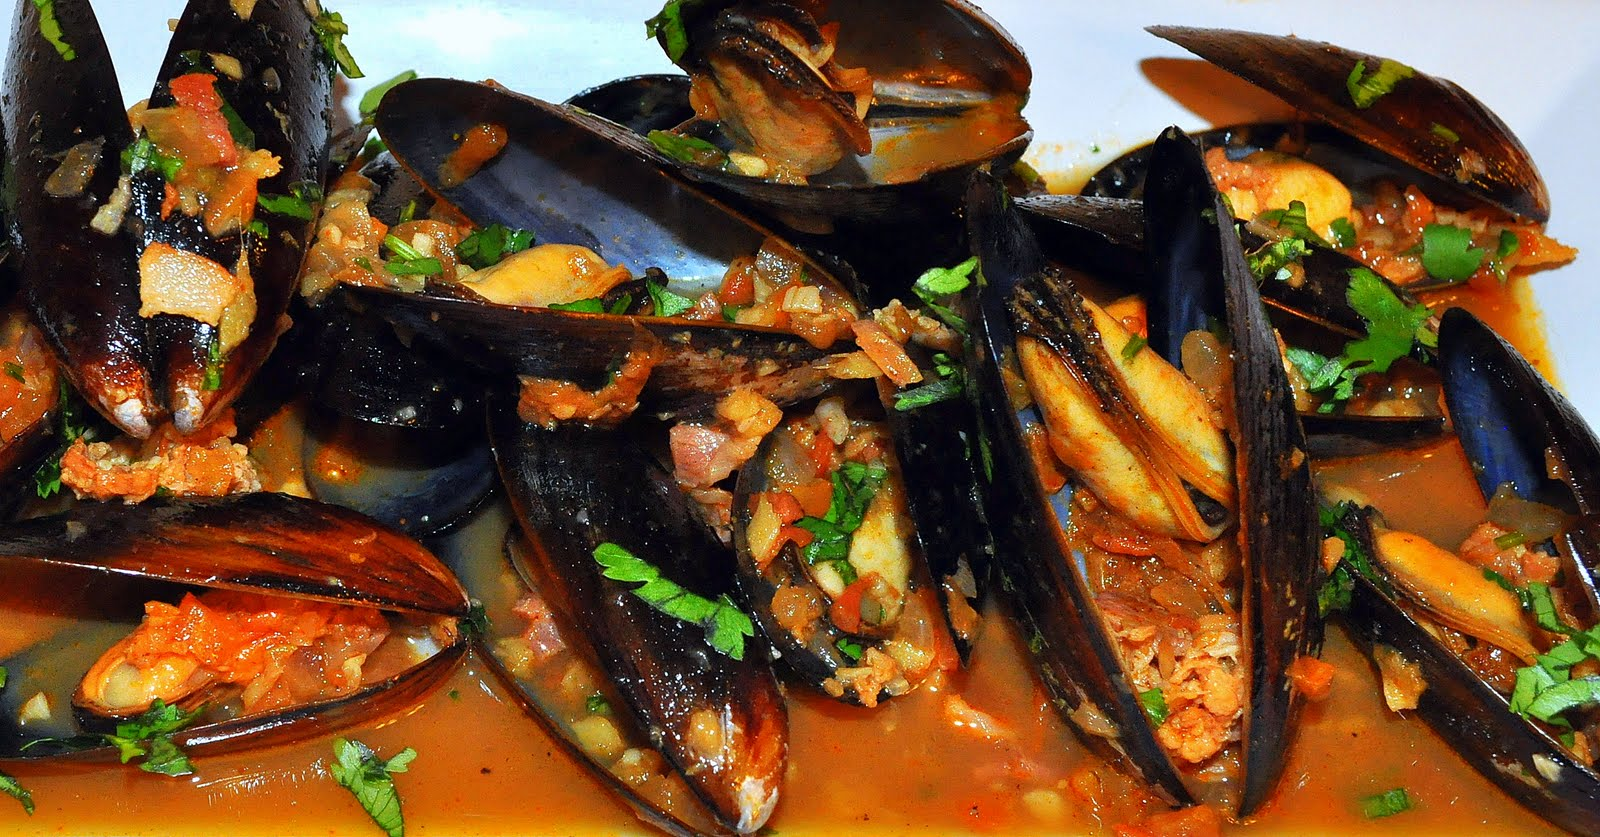 Life Scoops: Mussles in White Wine sauce